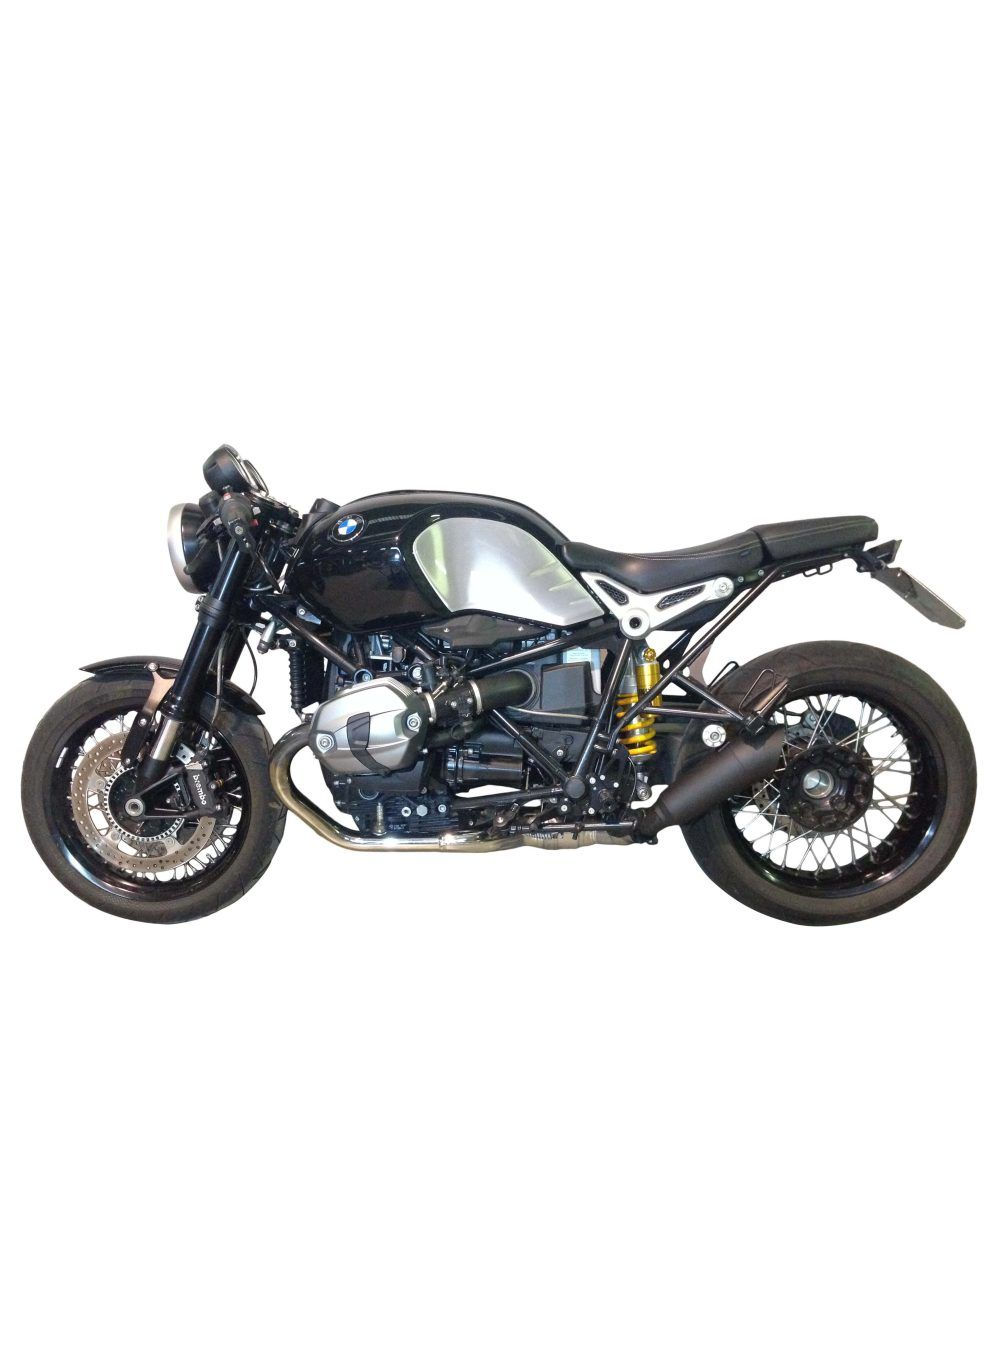 g g gp black exhaust bmw r ninet pure g g shop. Black Bedroom Furniture Sets. Home Design Ideas